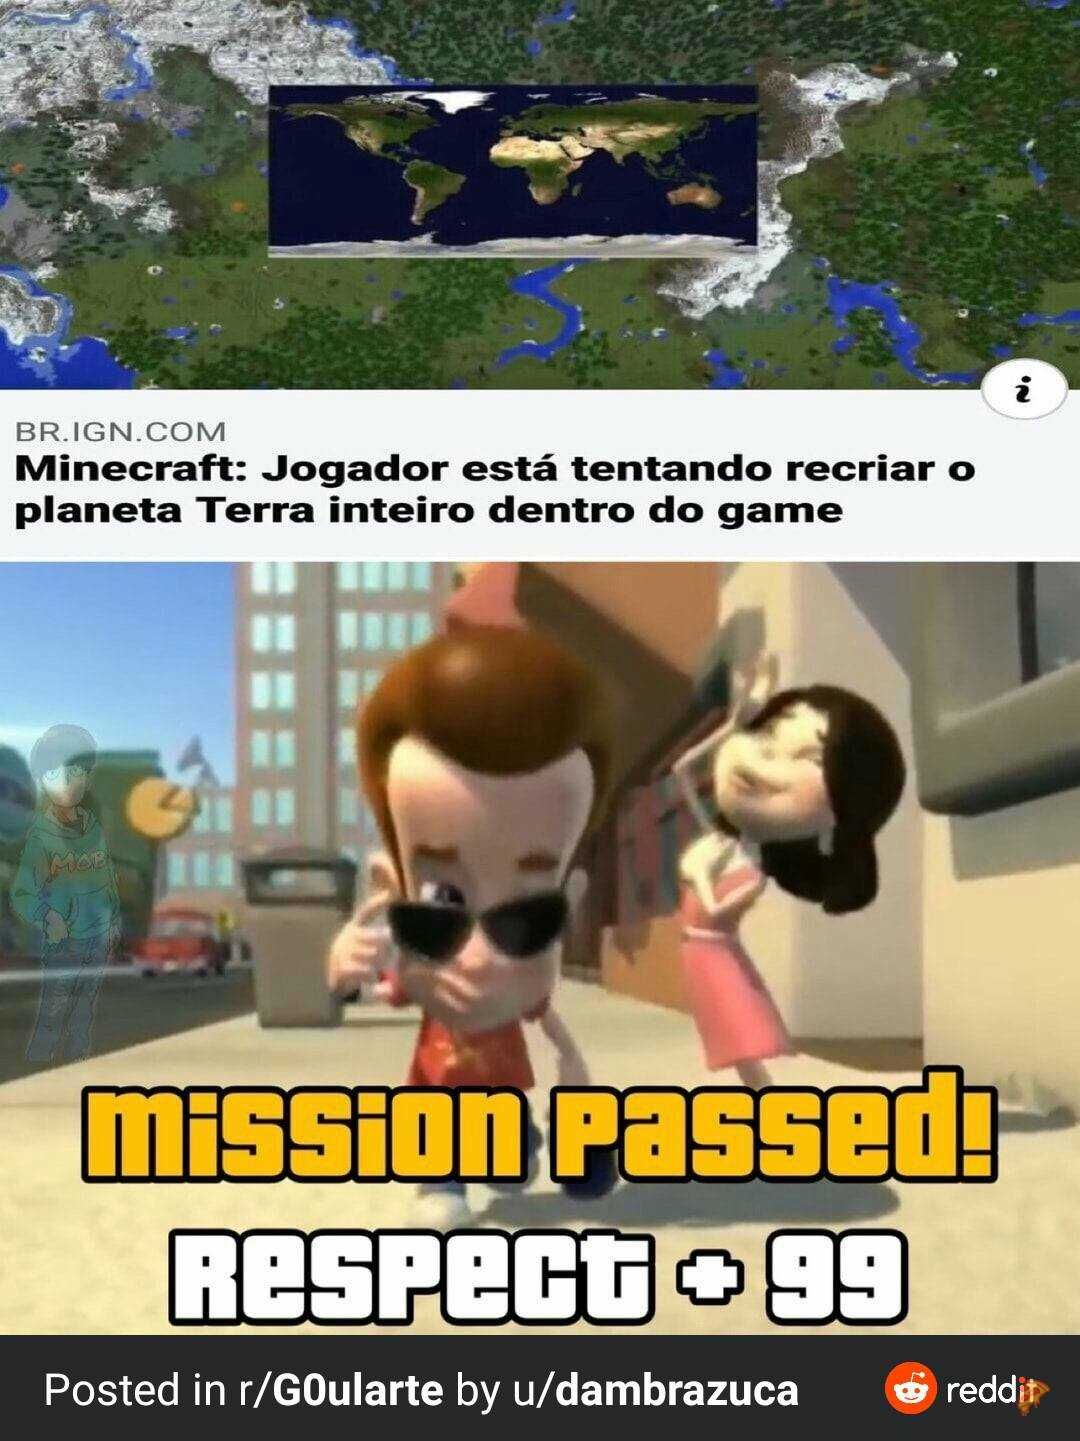 Pin By Fabielle Martins On Status Gaming Memes Memes Funny Memes